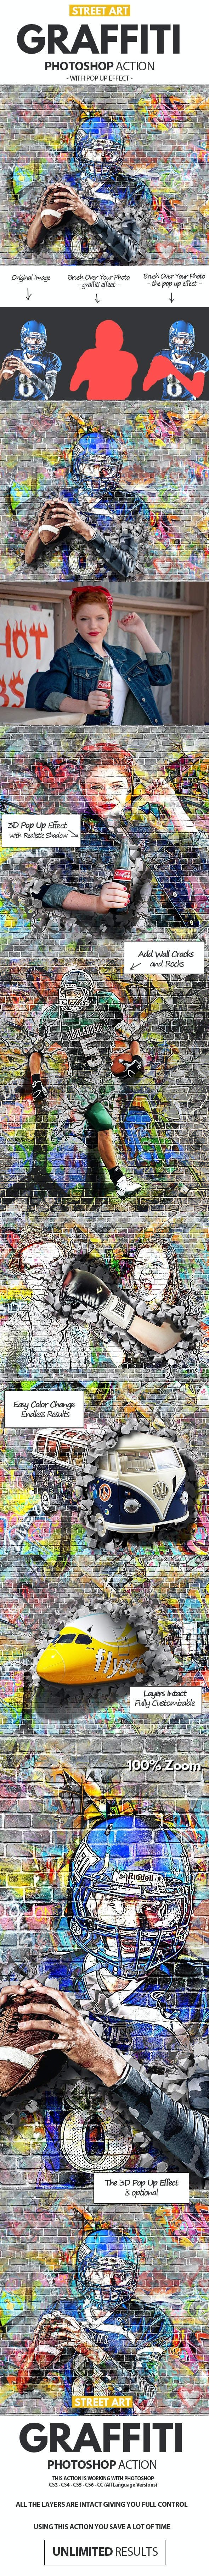 Graffiti Effect with Pop Up Photoshop Action by psddude